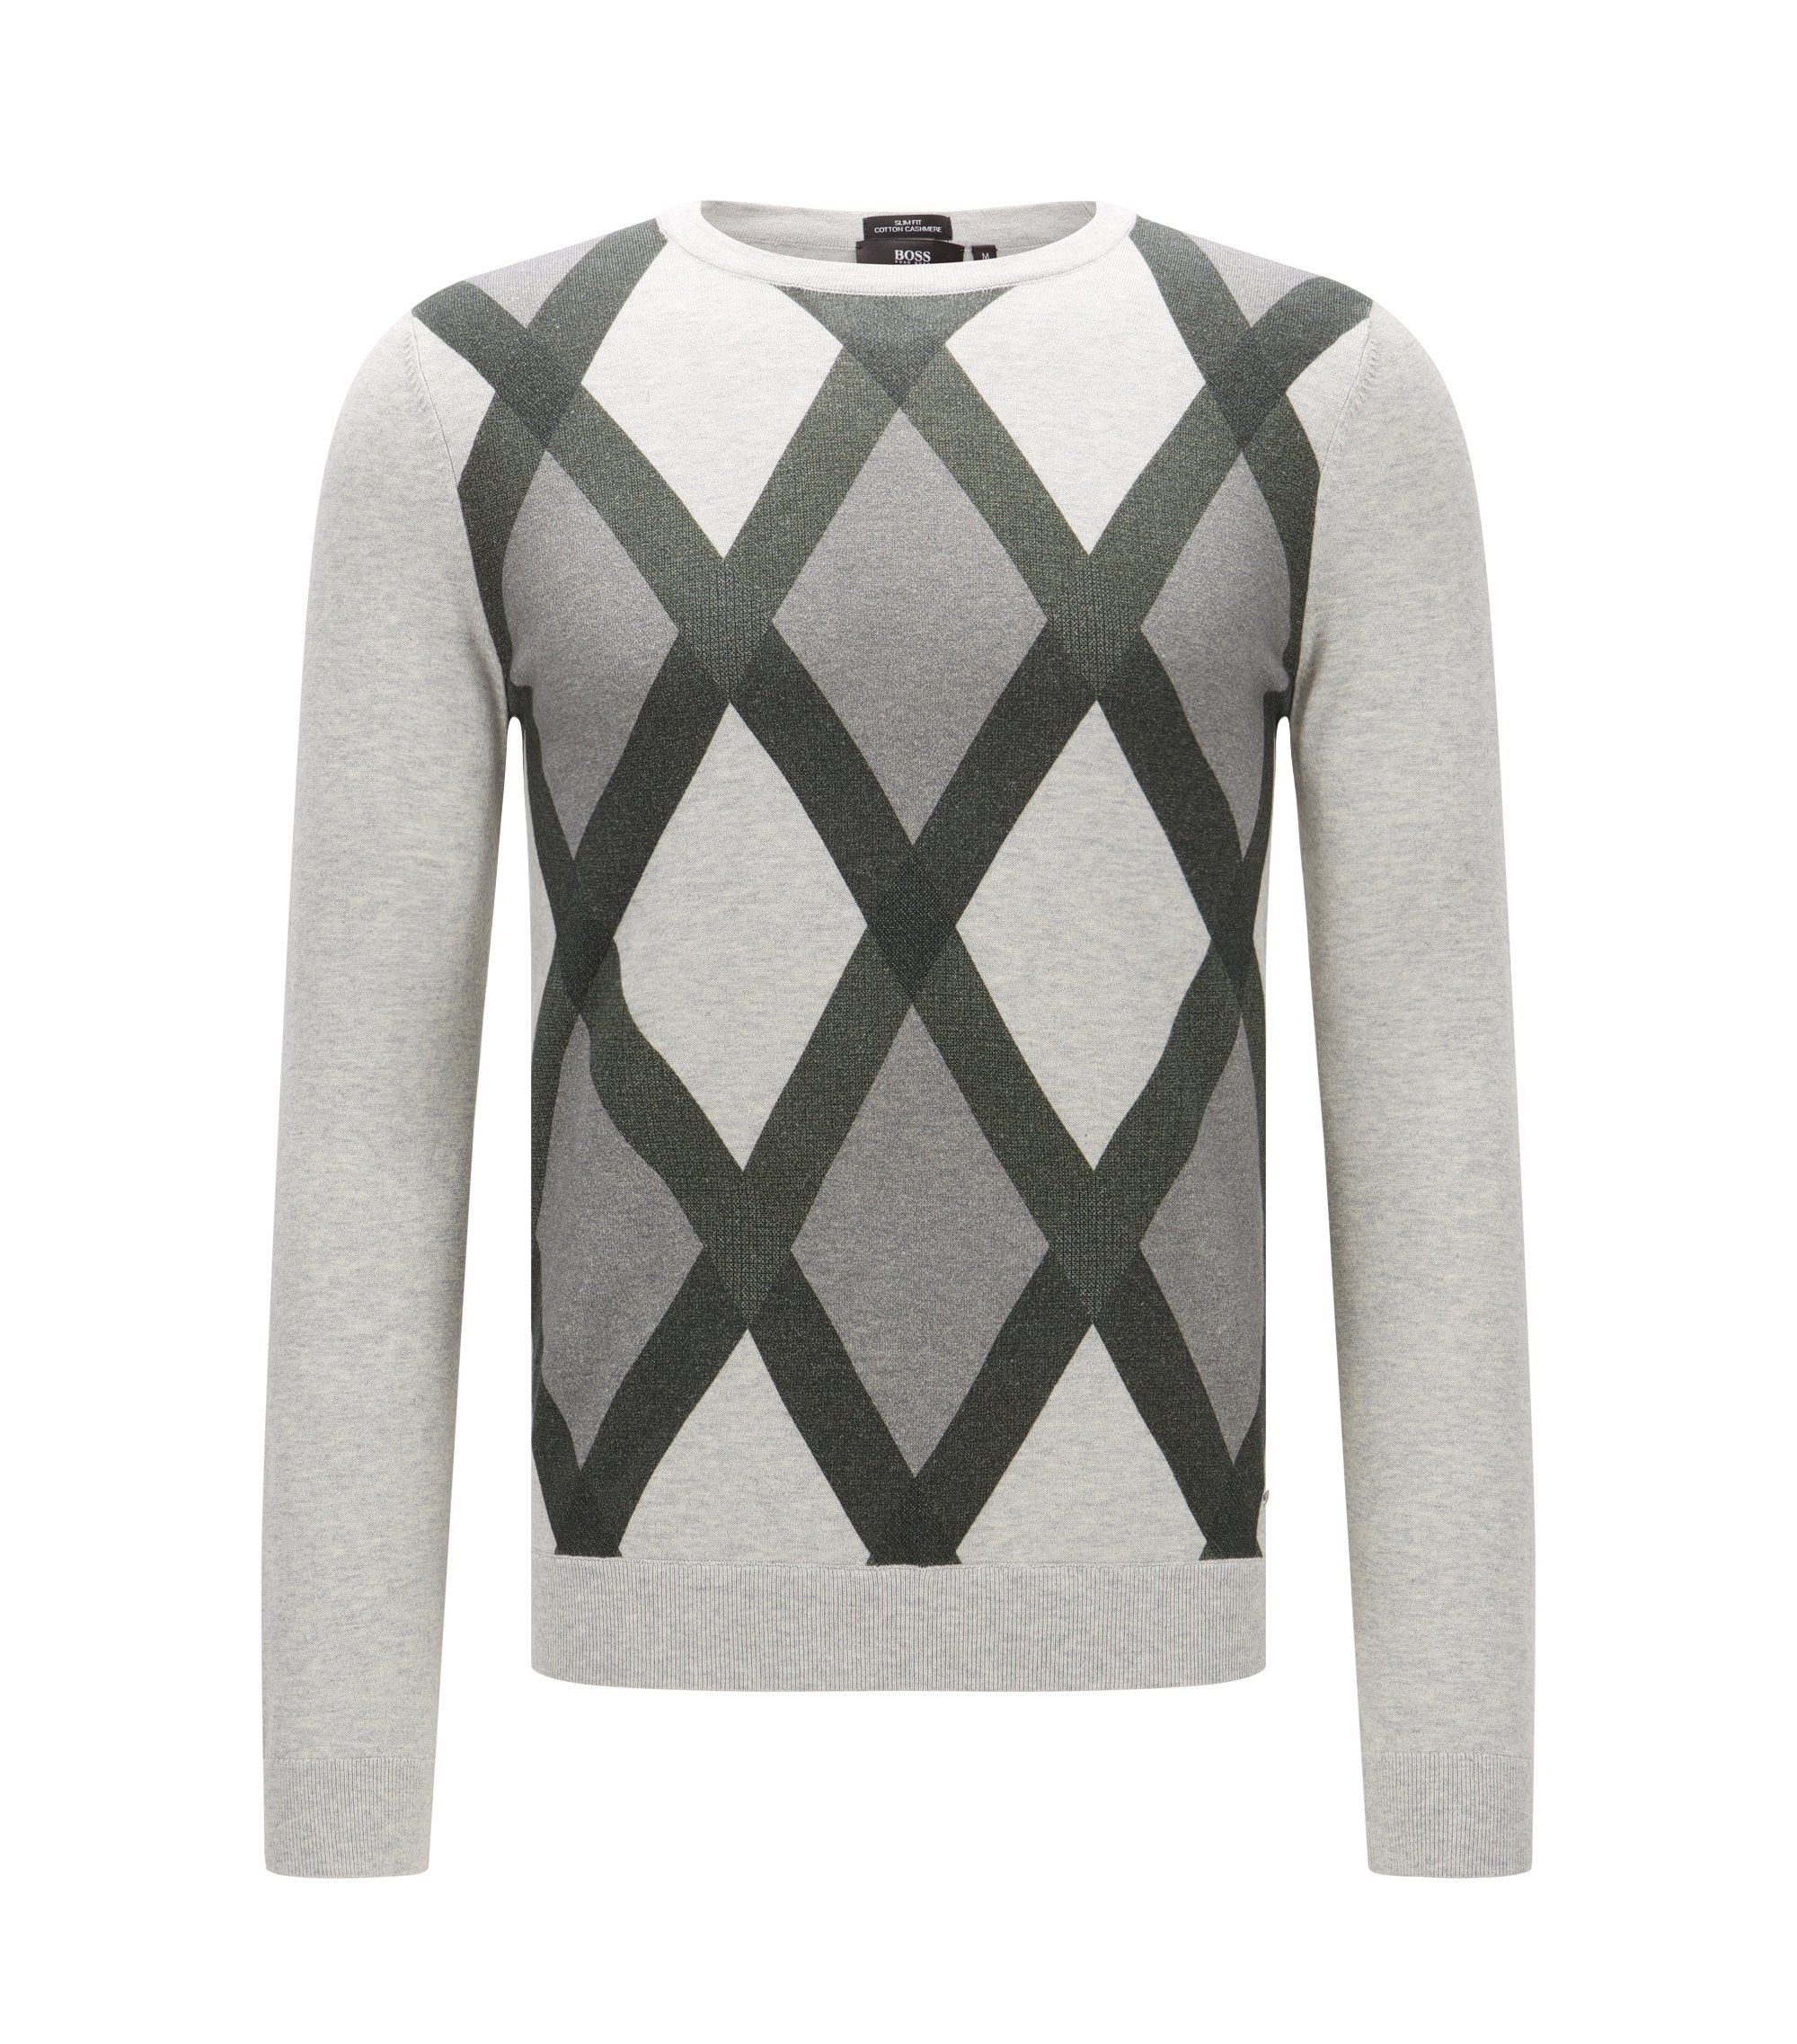 'Niras' | Argyle Cotton Cashmere Sweater, Open Grey